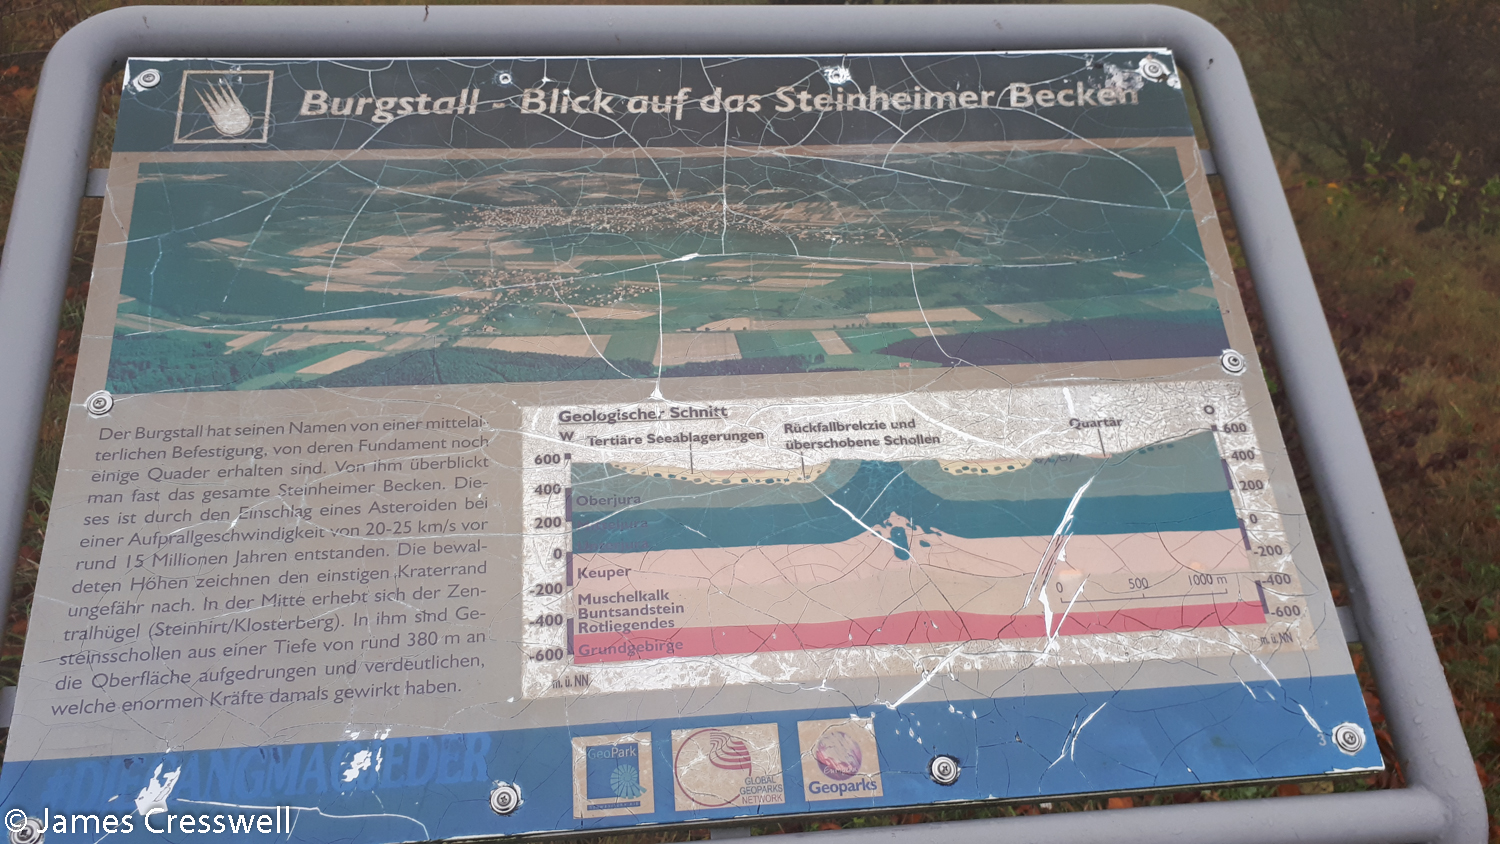 Information signboard with illustration